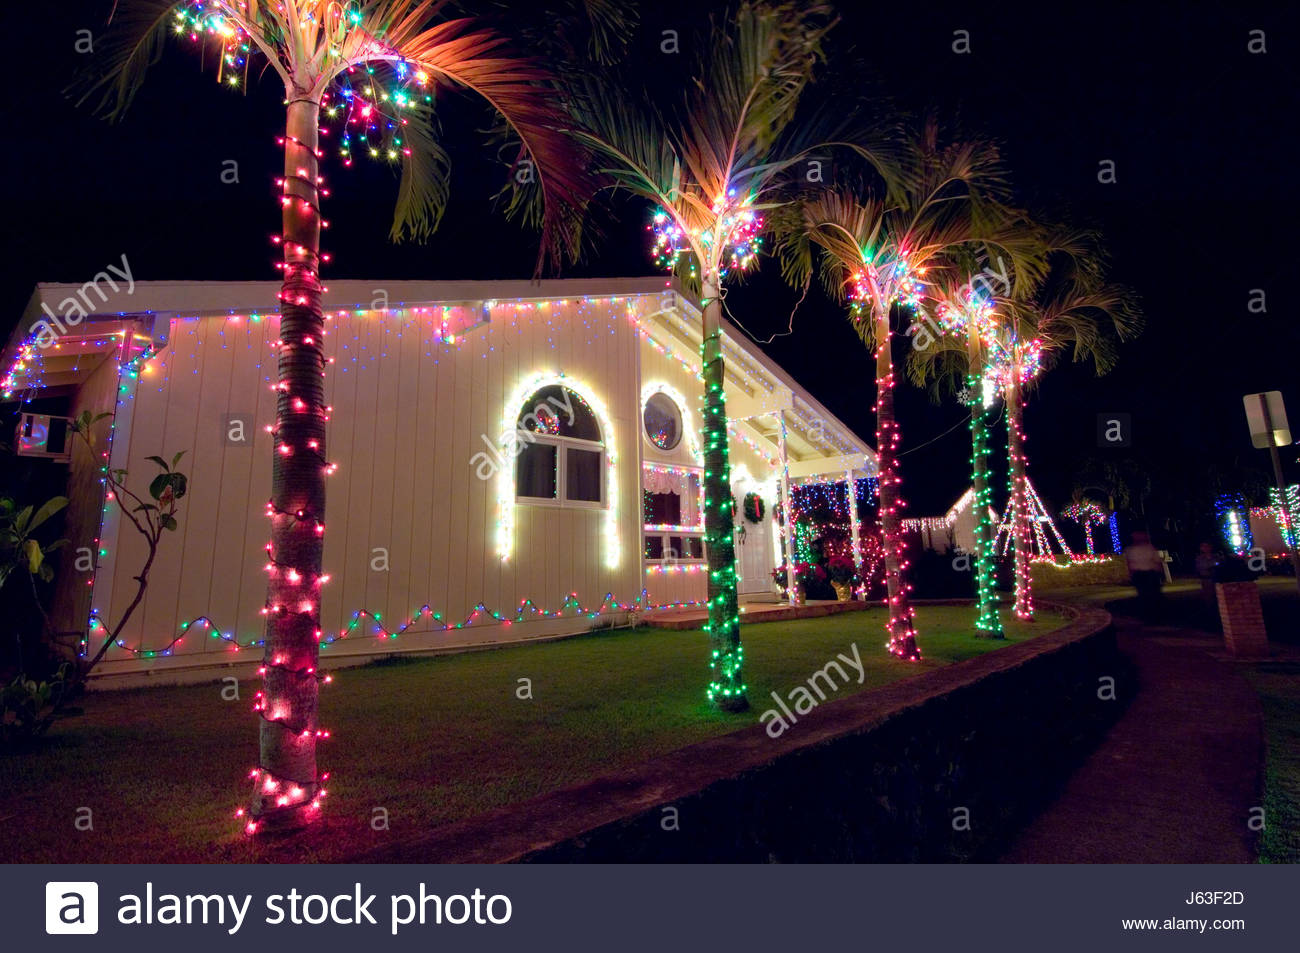 Hawaii Christmas Lights Stock Photos Hawaii Christmas Lights Stock